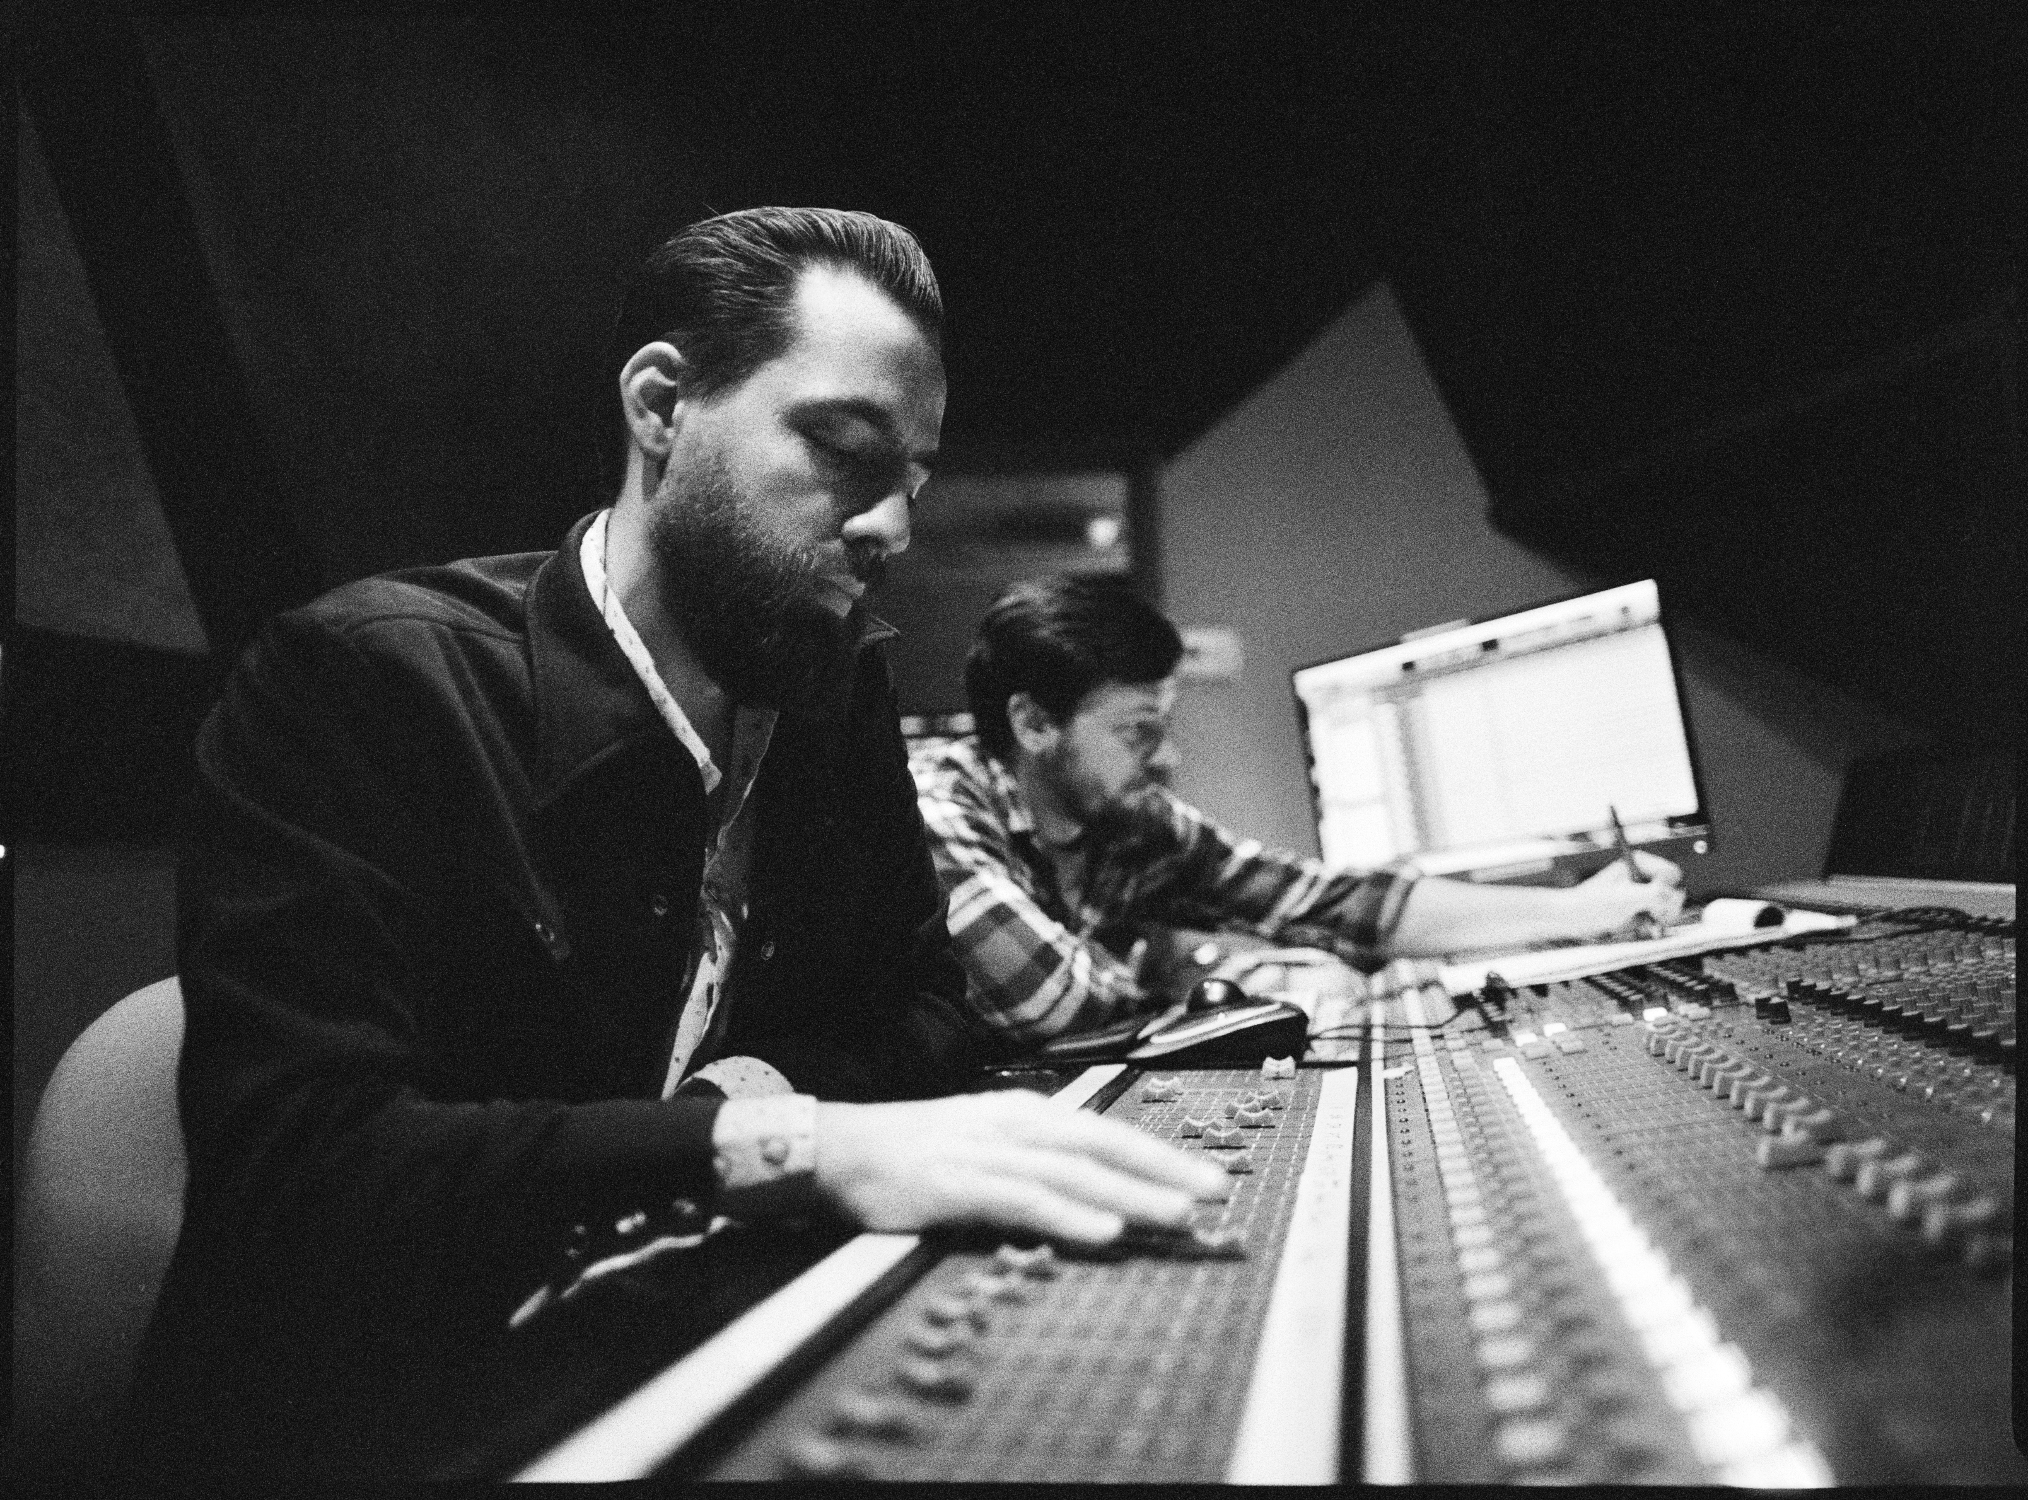 Producer Matt Ross-Spang adjusting levels in the control room of Sam Phillips Recording in Memphis, TN